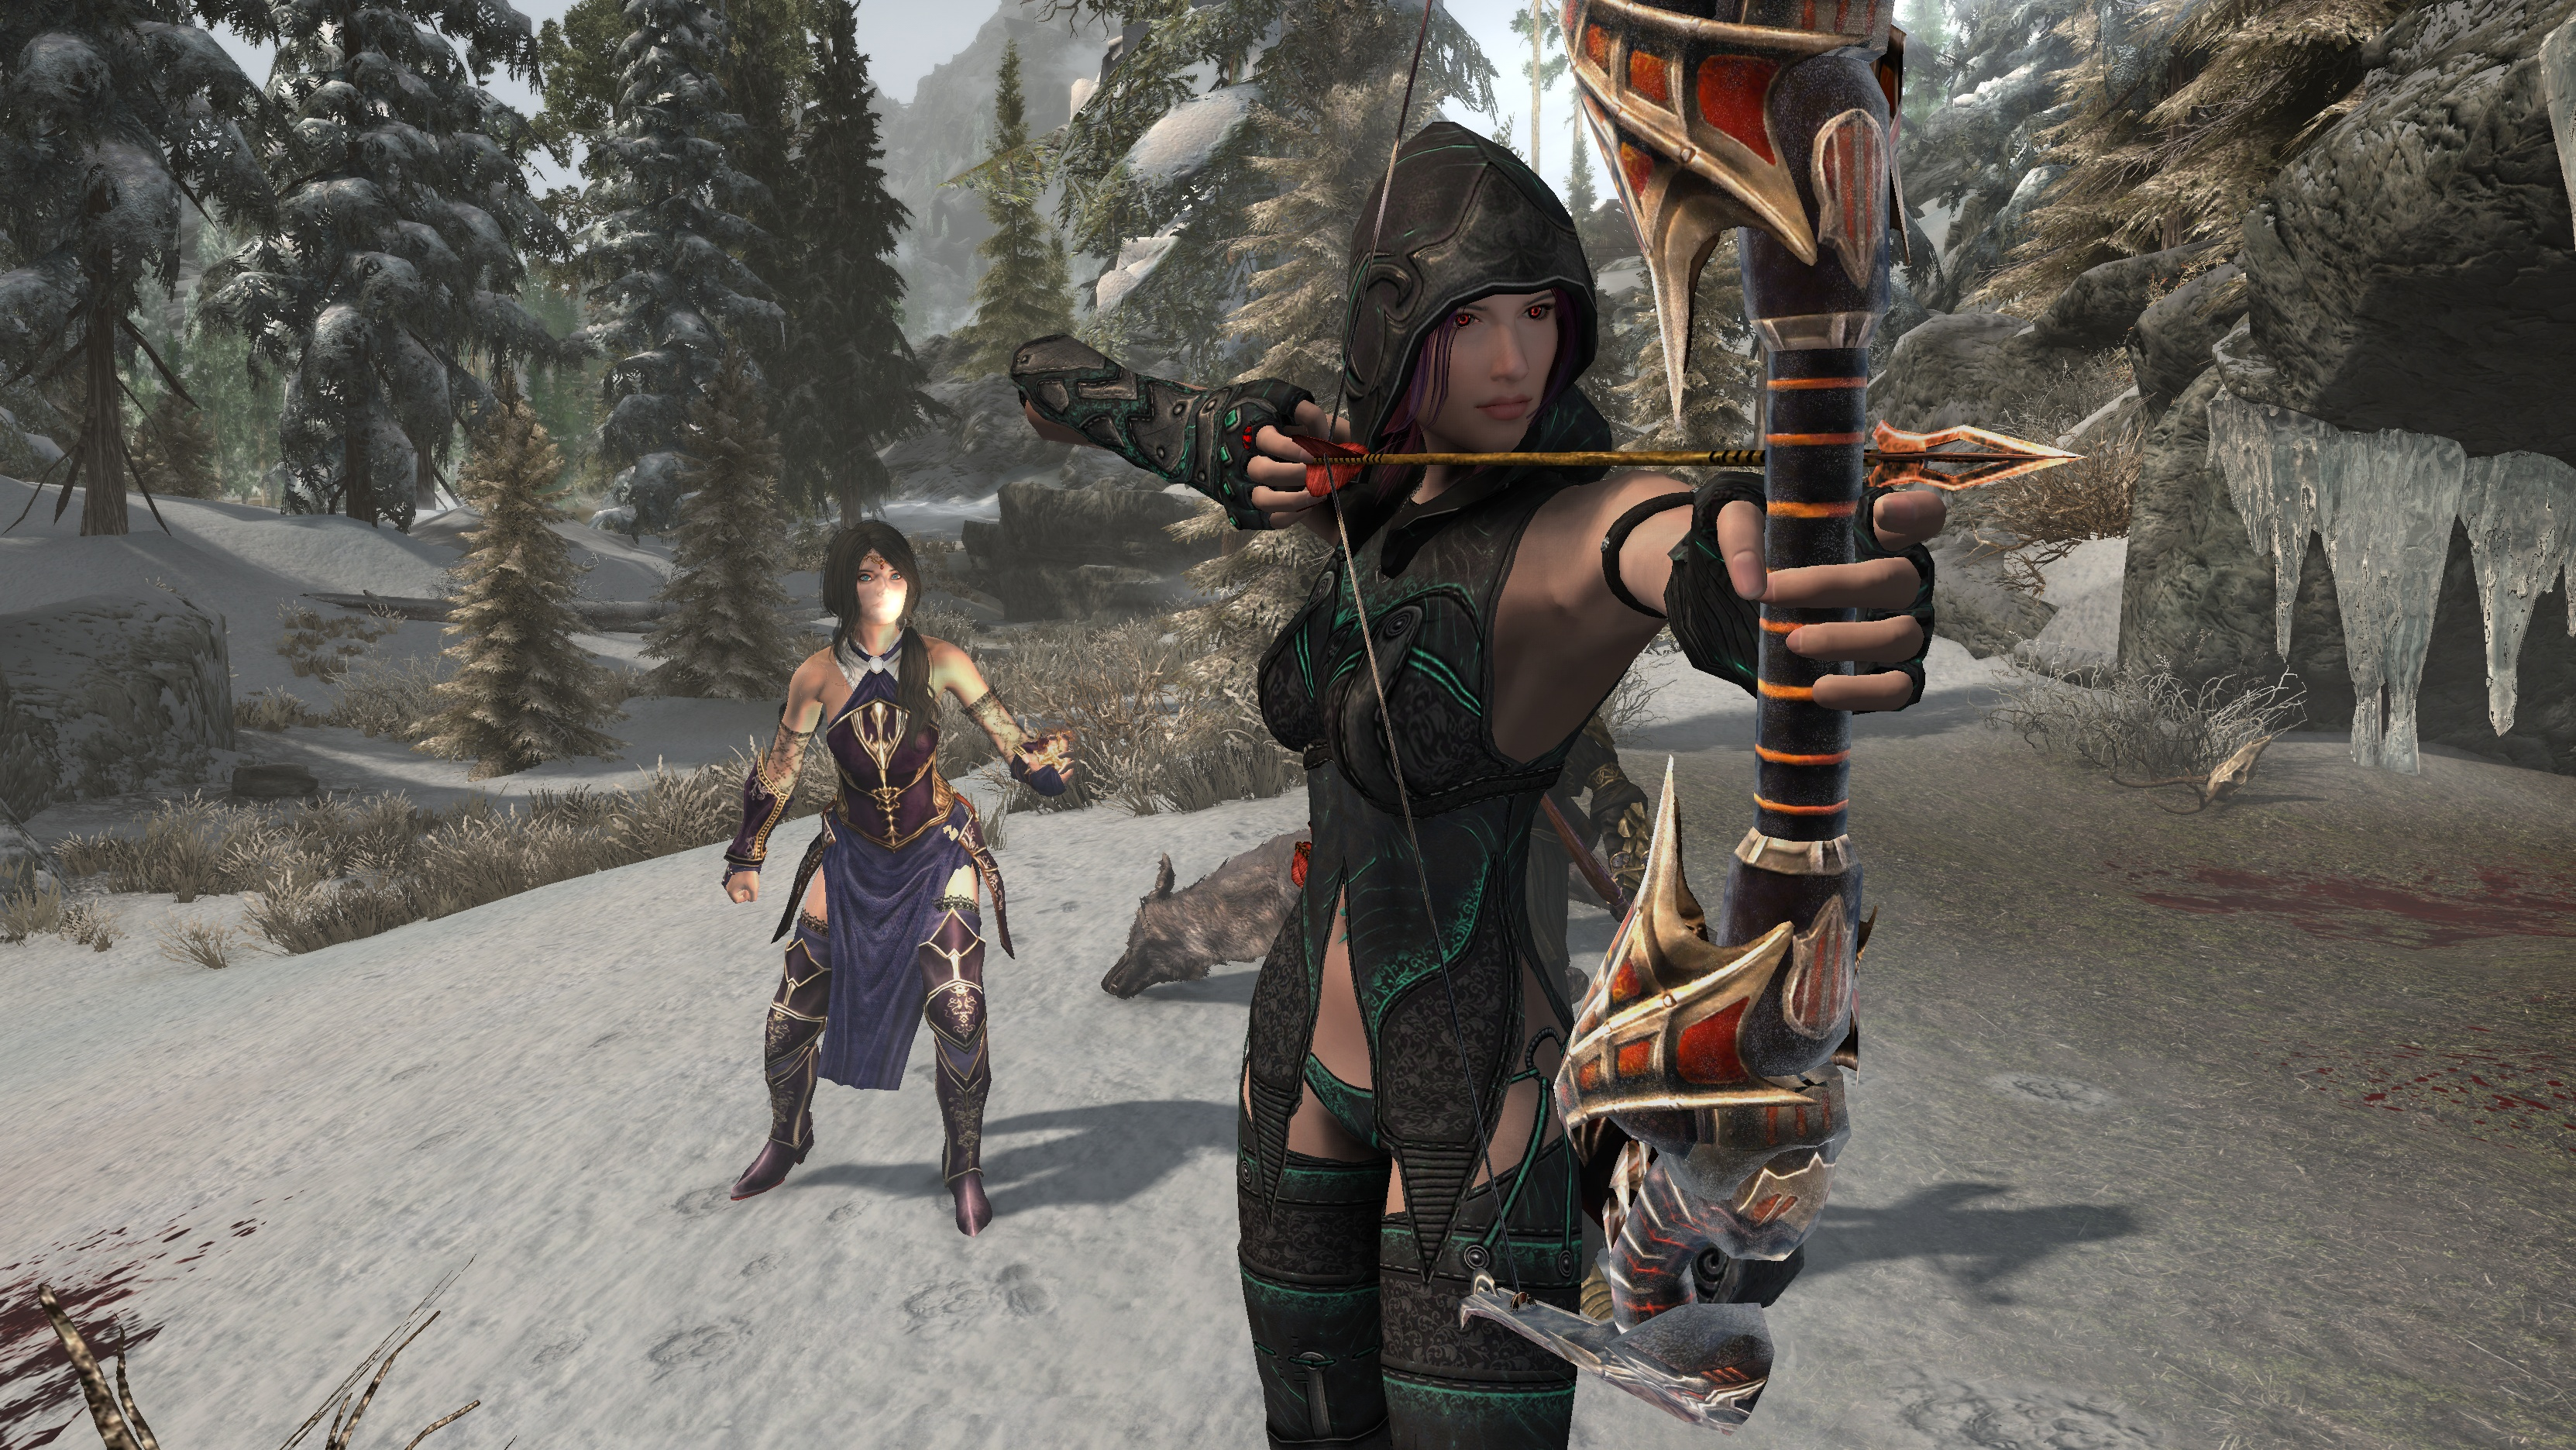 jp pg at Skyrim Special Edition Nexus - Mods and Community